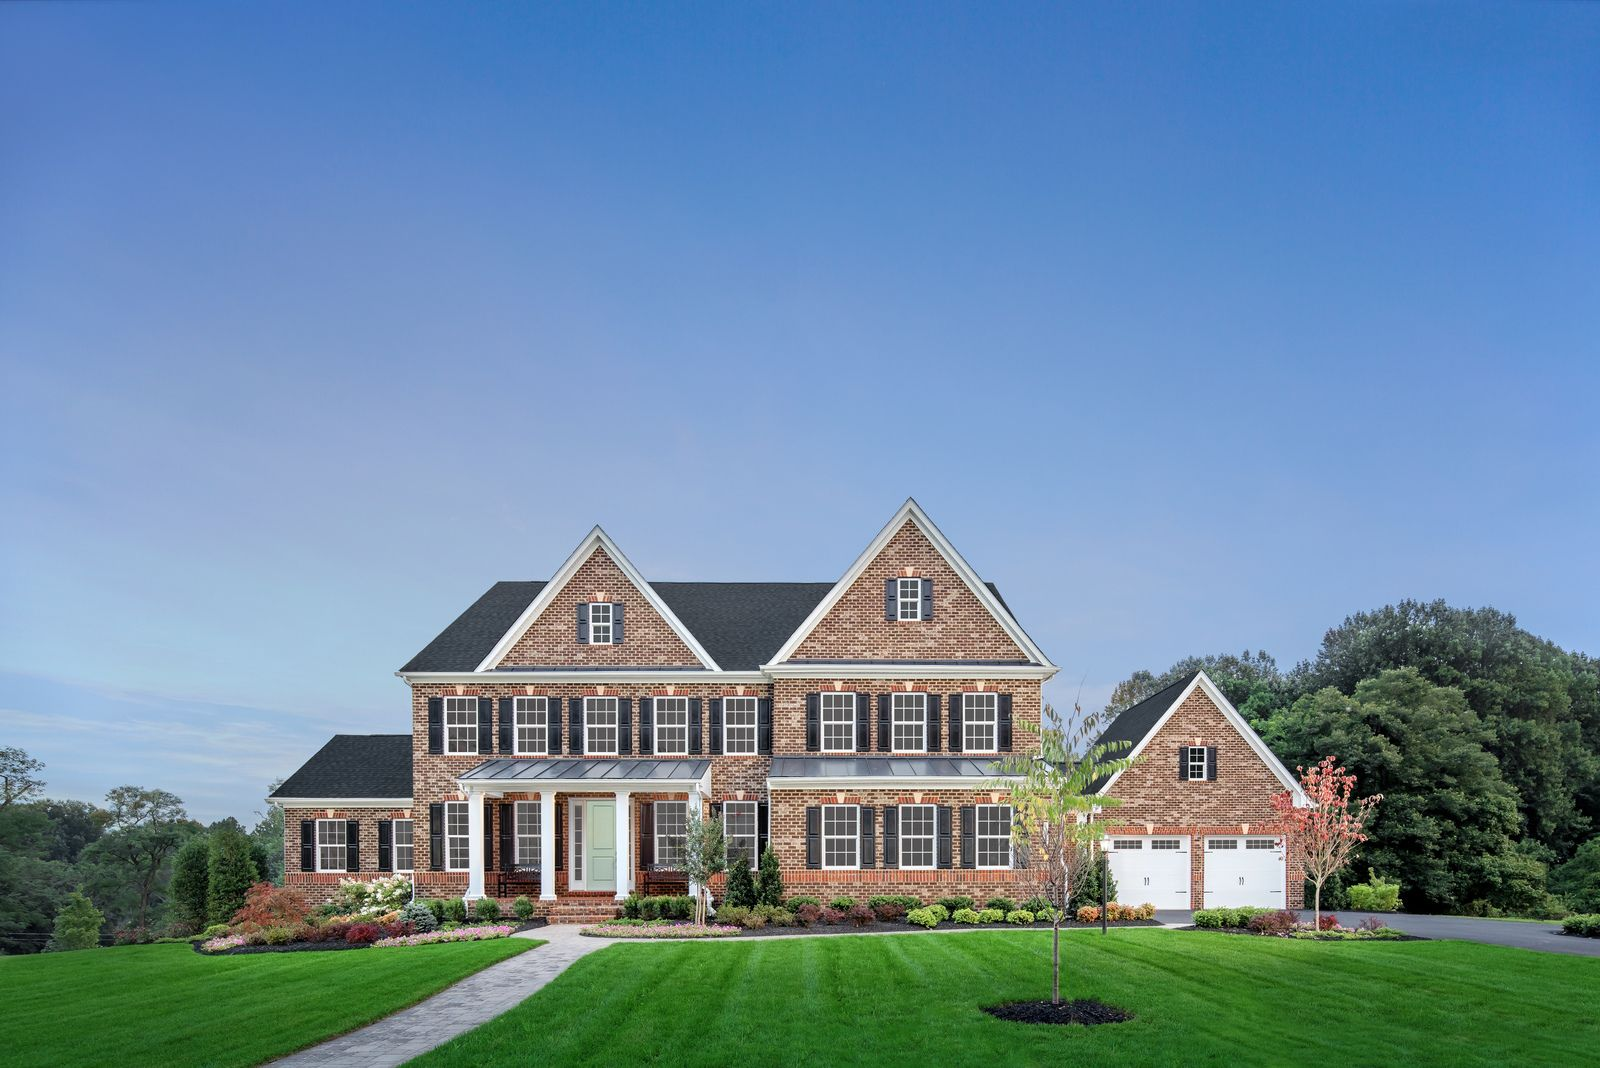 PREMIUM 1-ACRE+ USABLE HOMESITES WITH PUBLIC WATER AND SEWER:Experience luxury and grandeur with NVHomes at Longview. Our estate-like residences are now selling.Schedule a visit today!